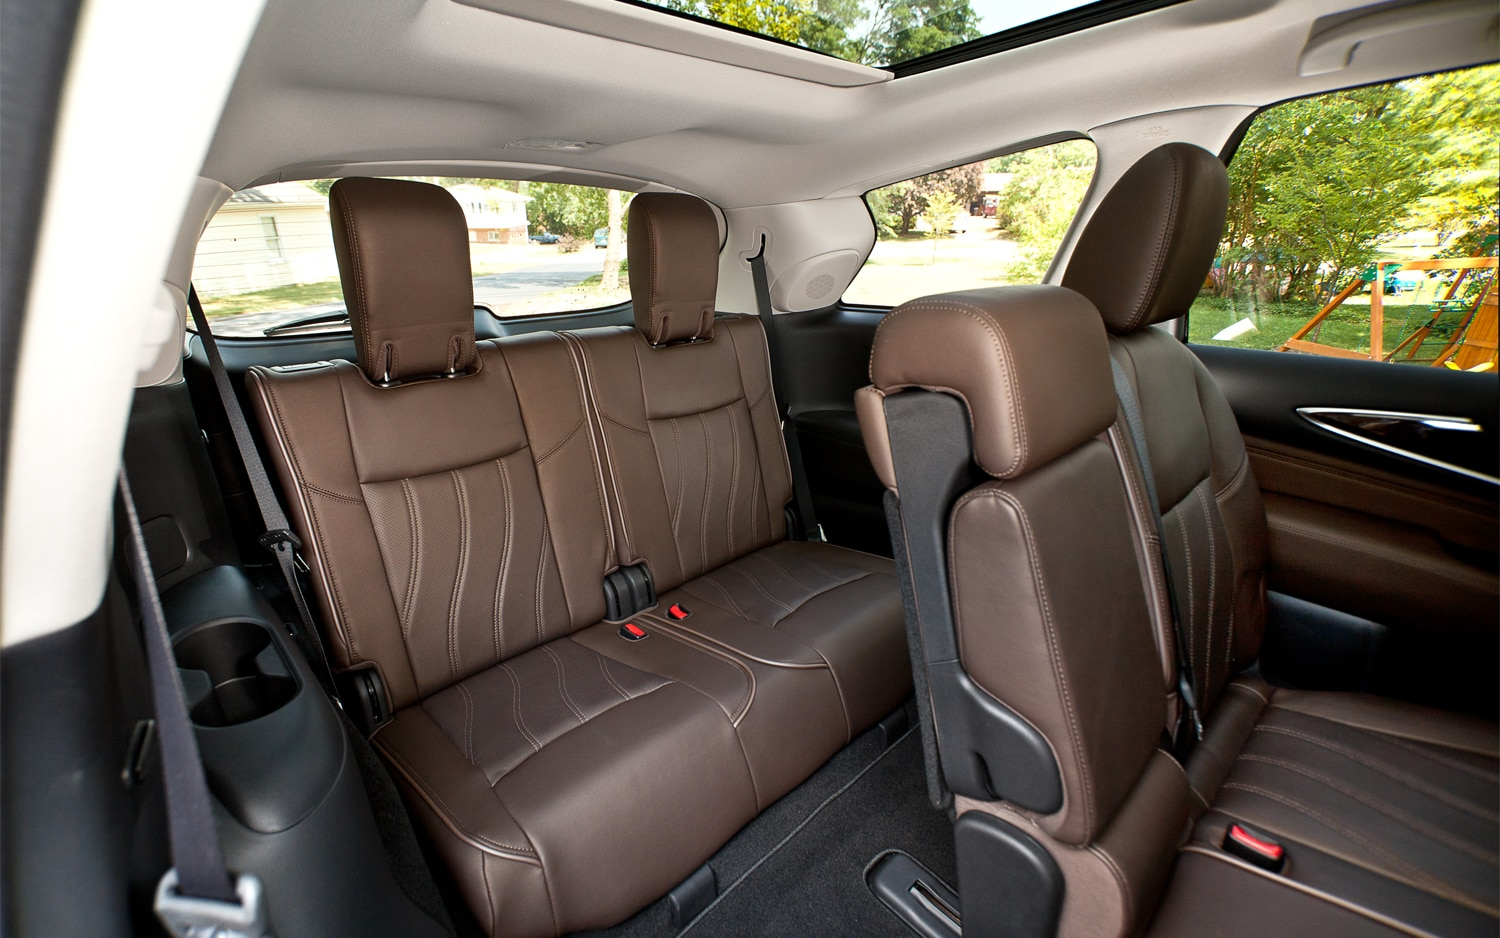 2013 infiniti jx35 four seasons update september 2012 soon vanachro Image collections